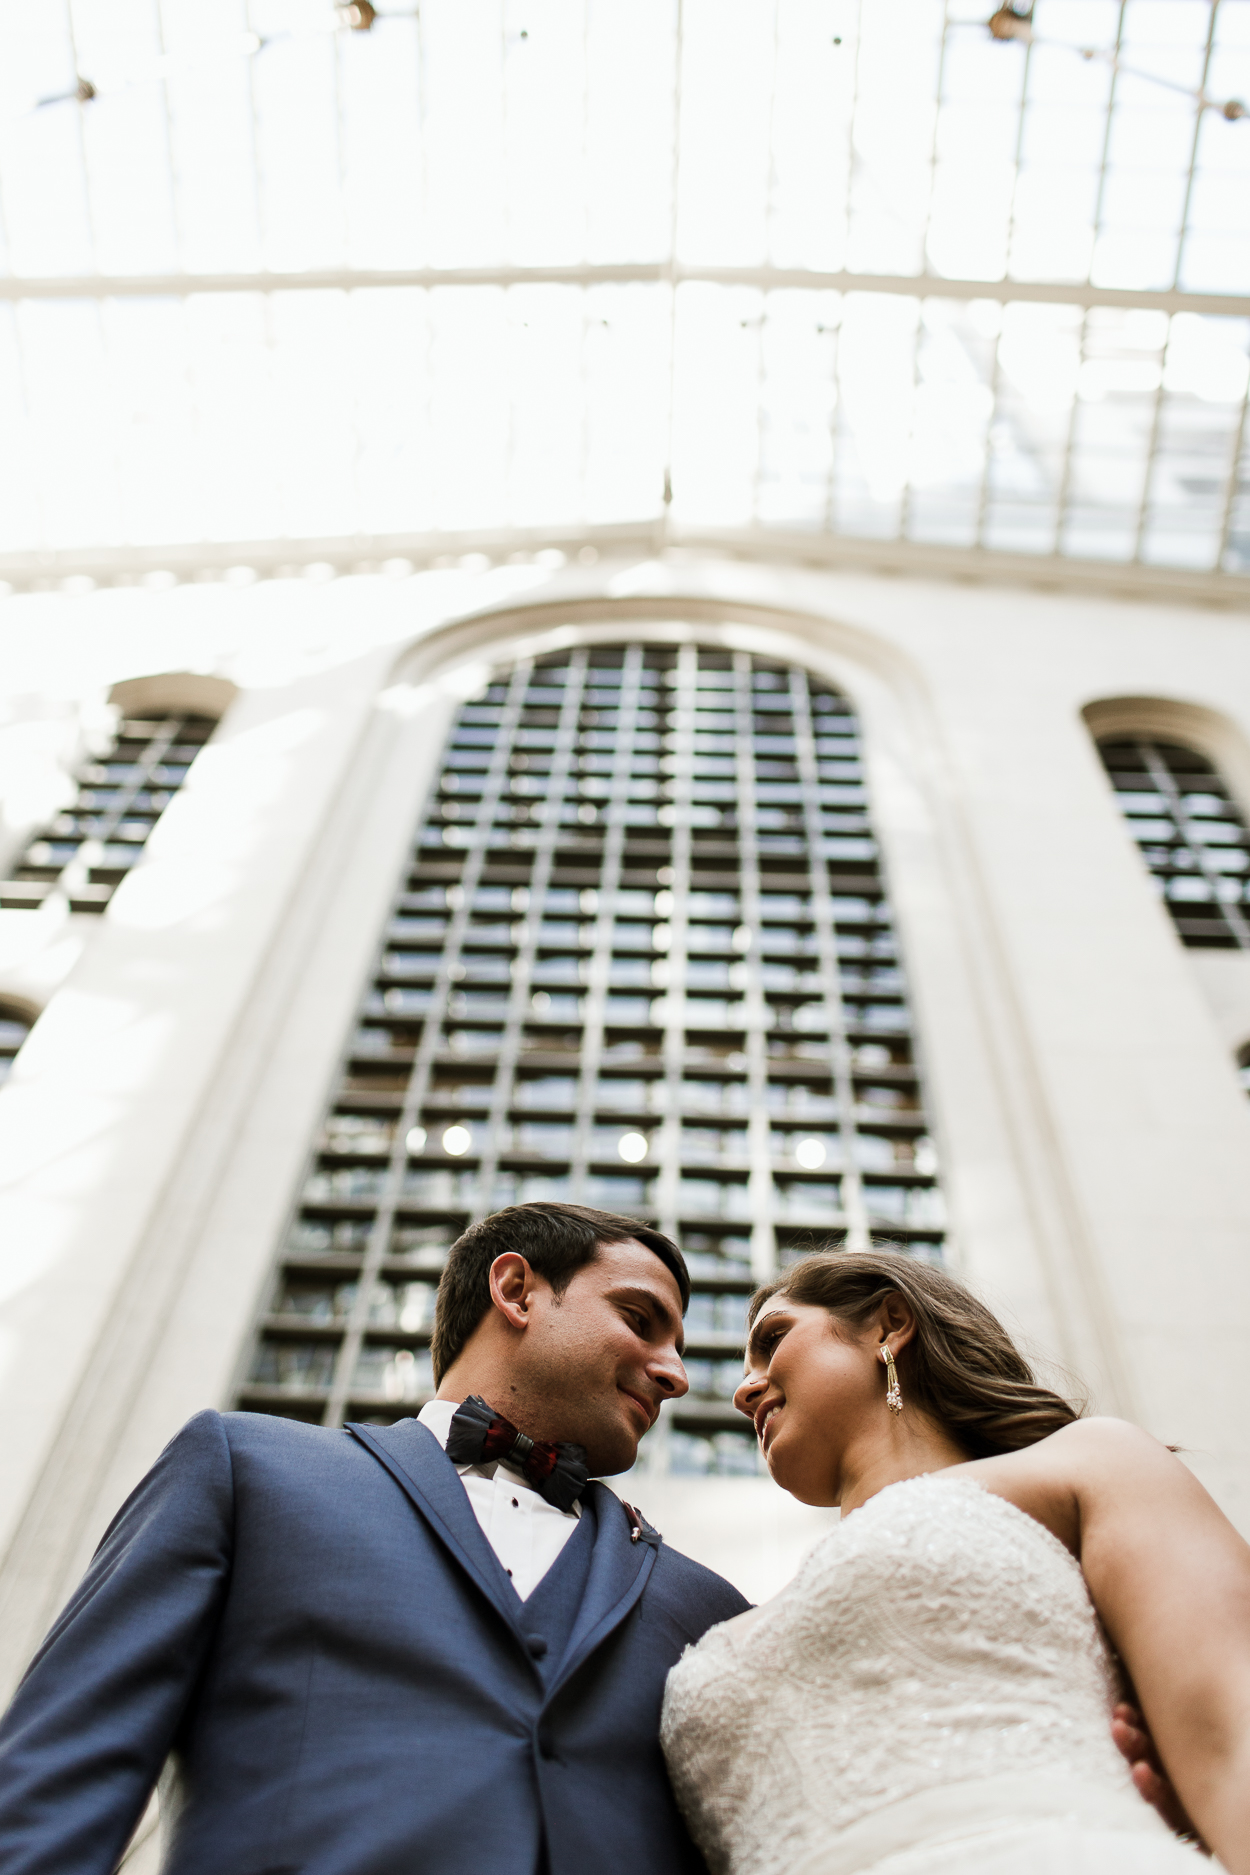 Gianna Keiko Atlanta NYC California Wedding Elopement Photographer_Sneak Peek-15.jpg